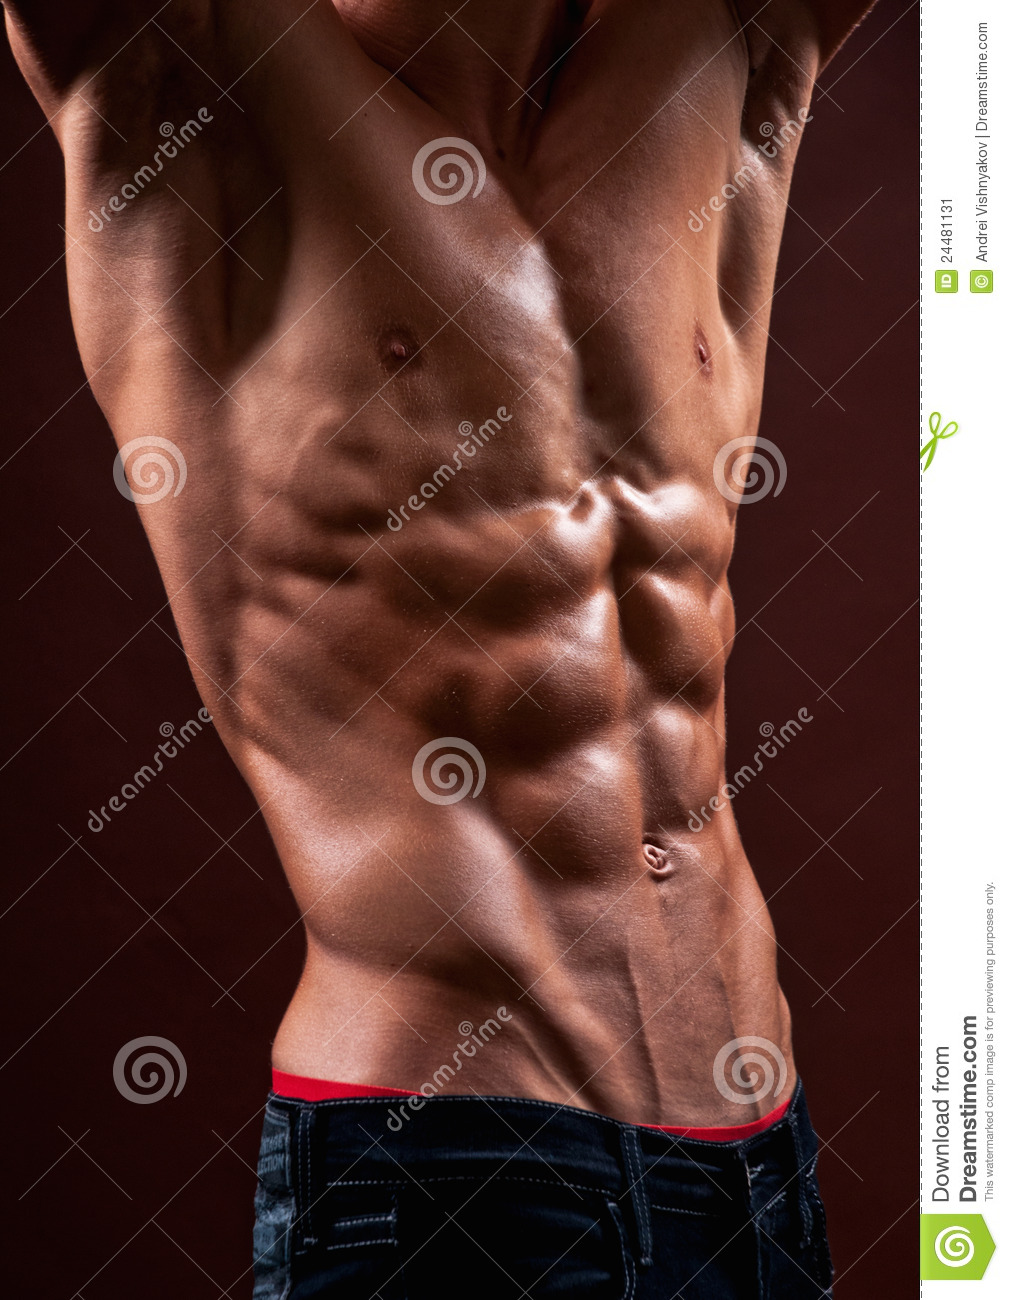 Torso with six pack stock photo. Image of male, exercise